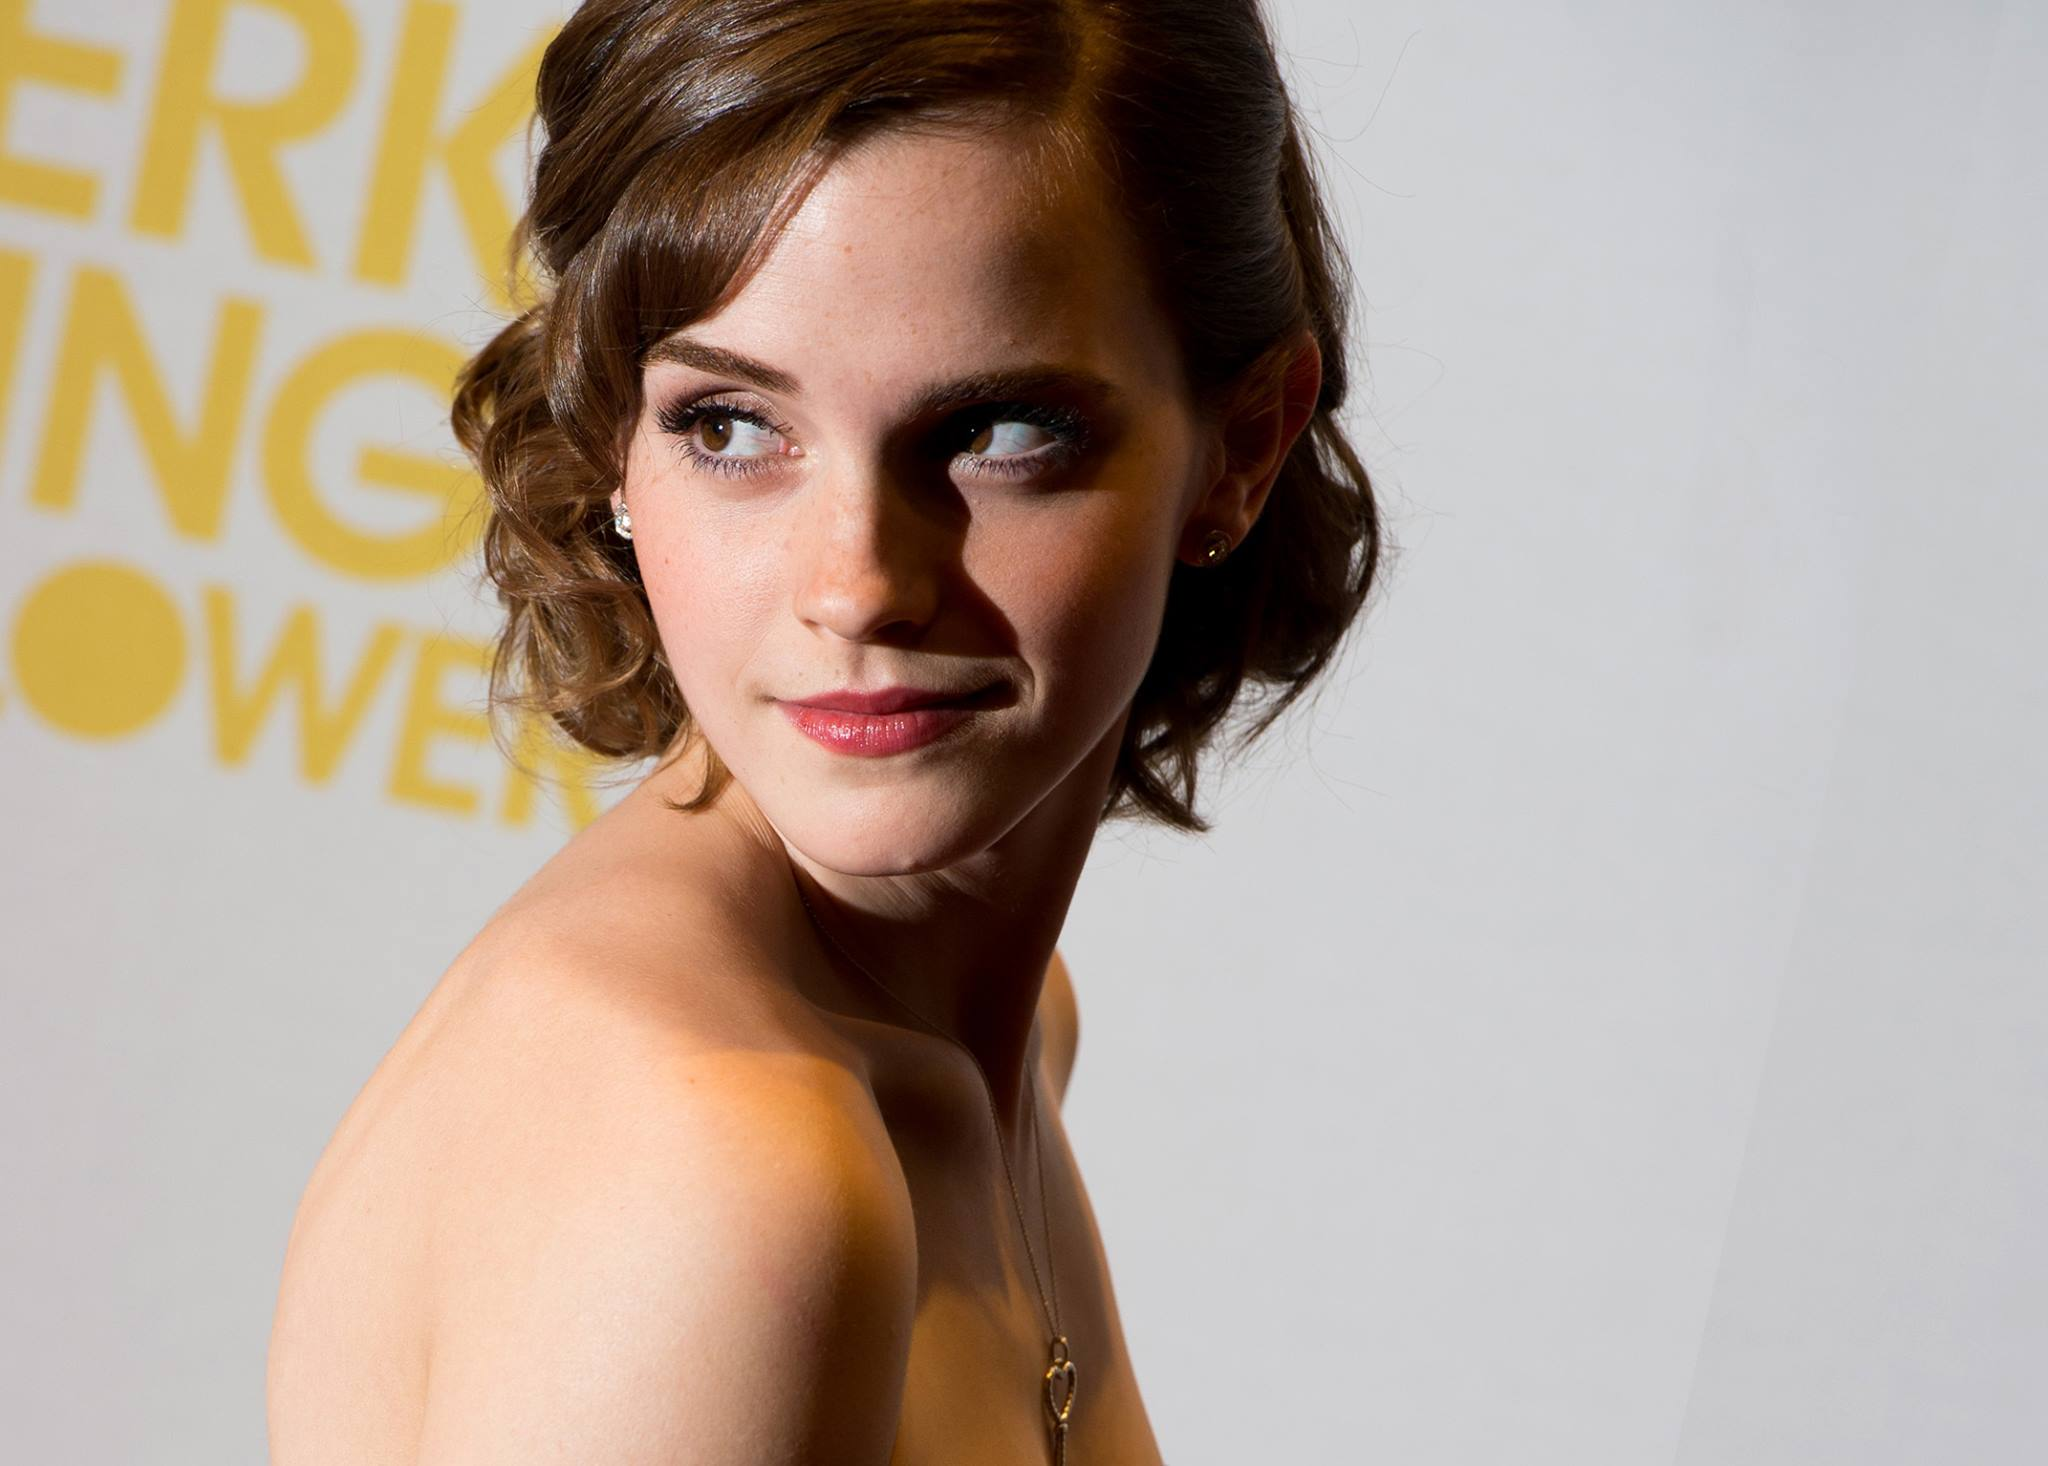 Emma Watson Breasts And Nipples Pics Surface Online, Lawyers Not Happy 14393341 10157582985885604 1662180080 o